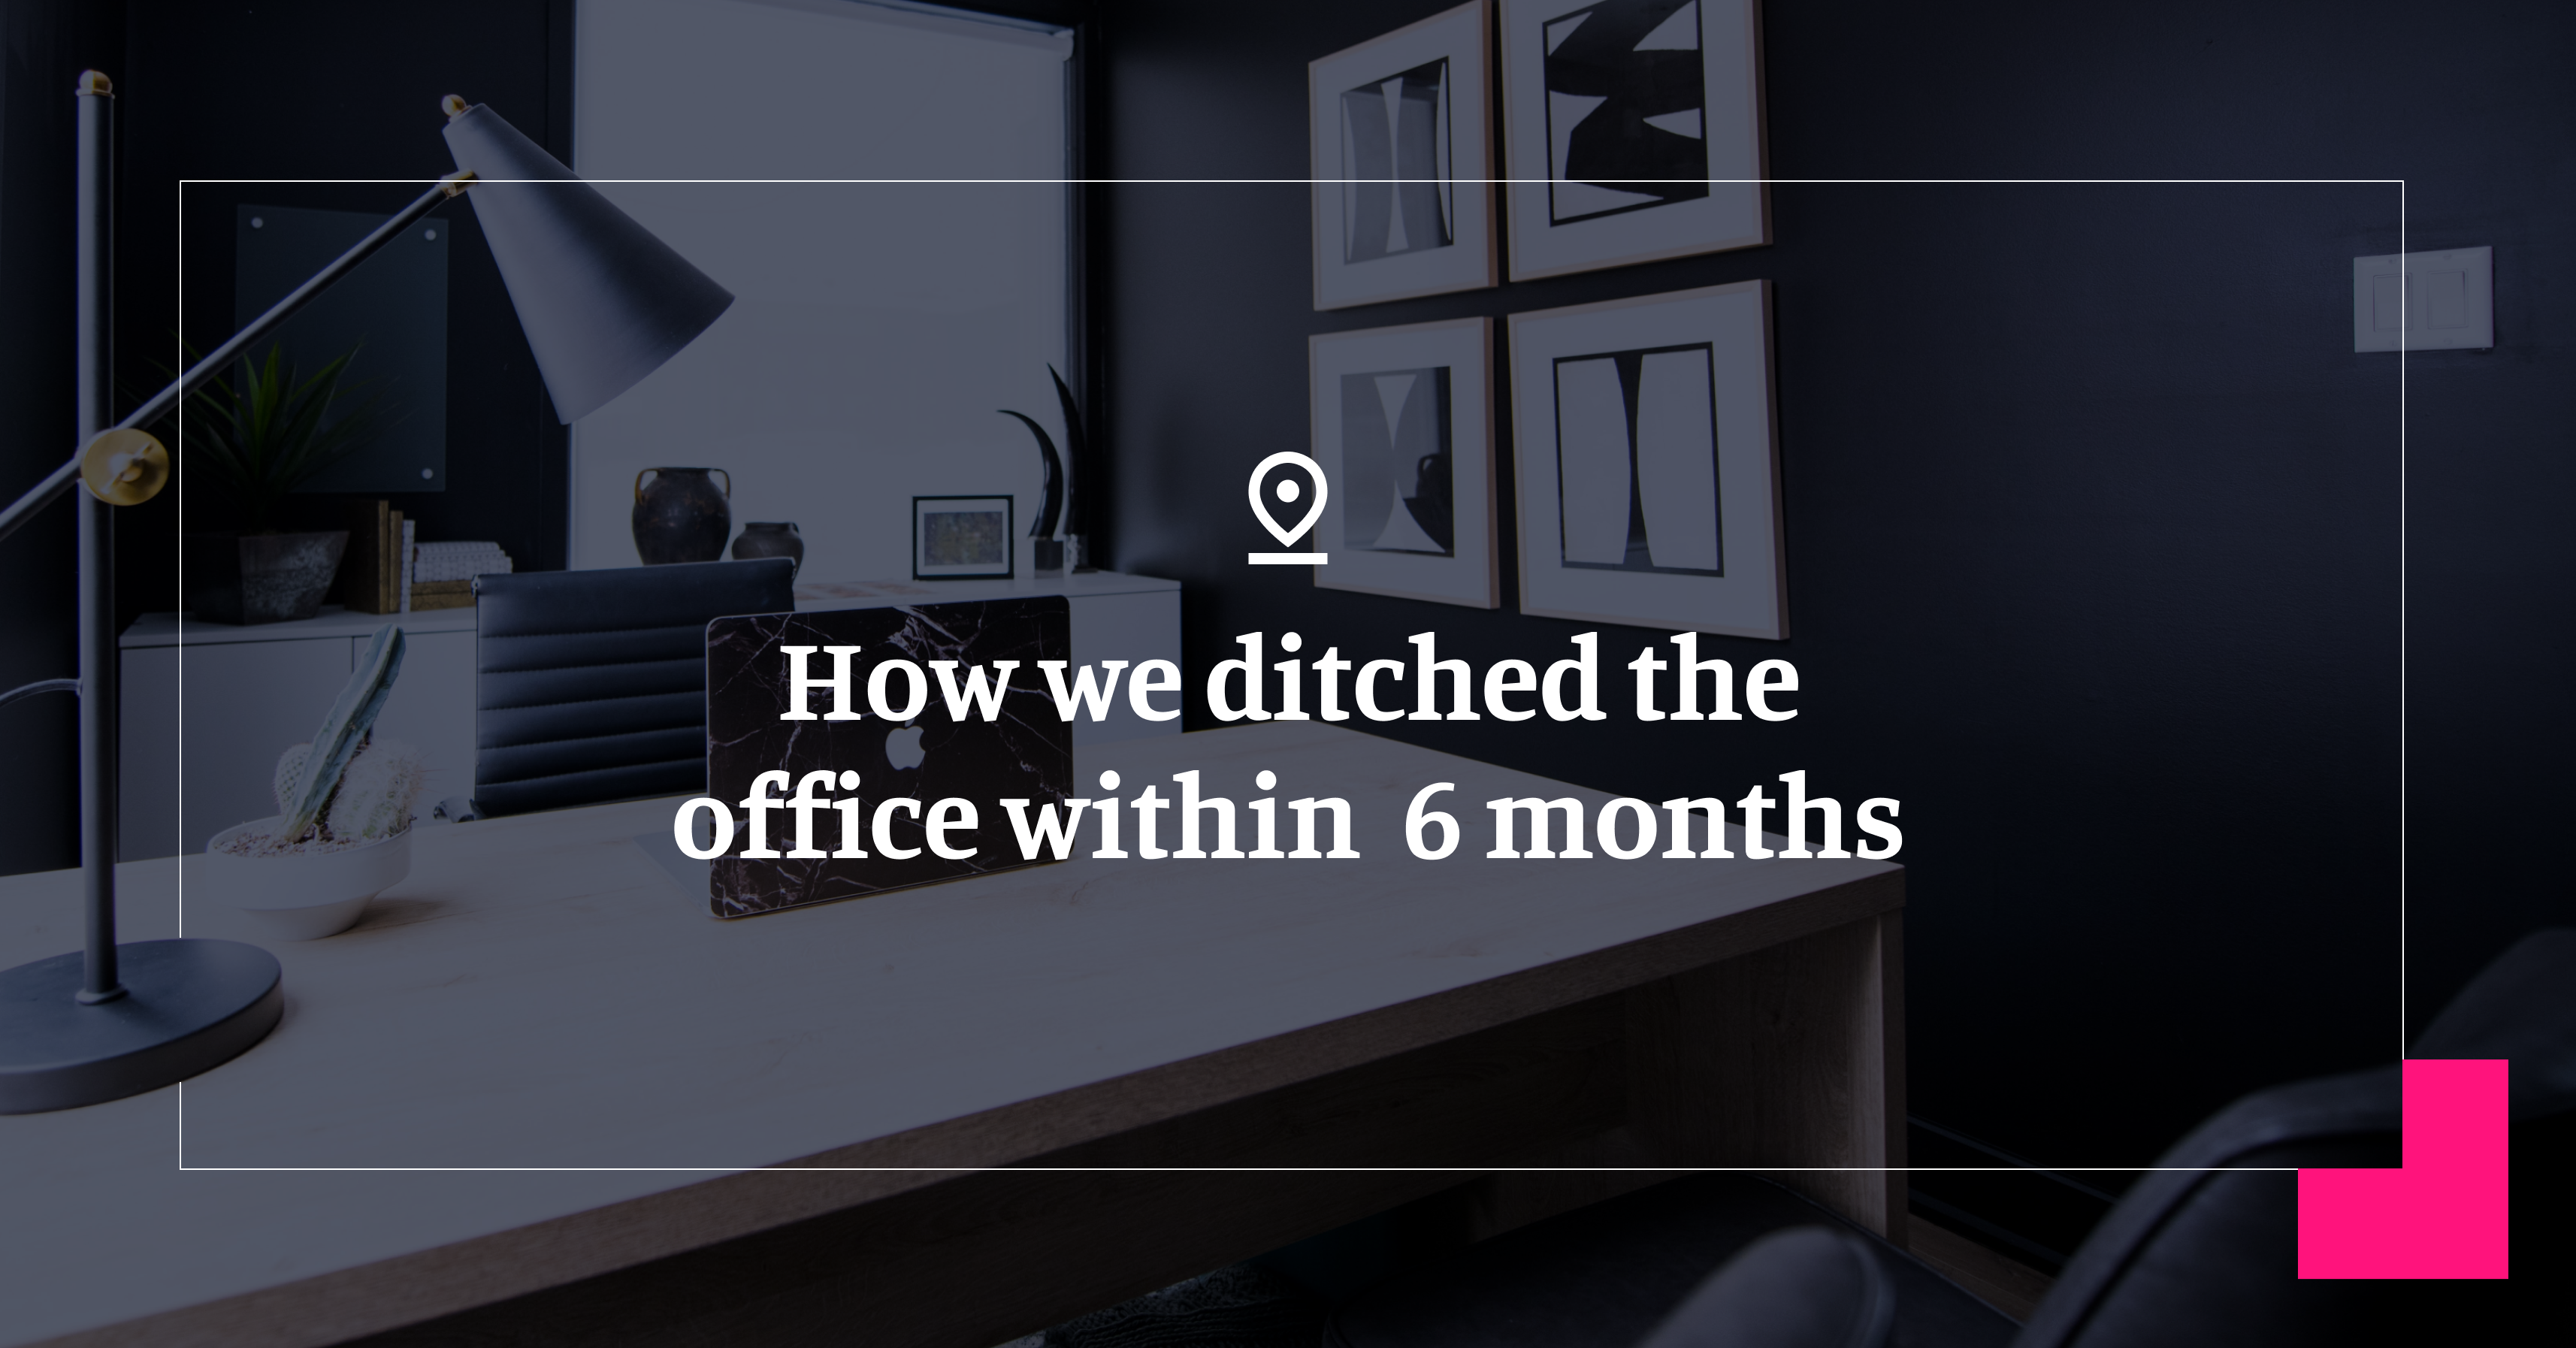 How We Ditched The Office Within 6 Months